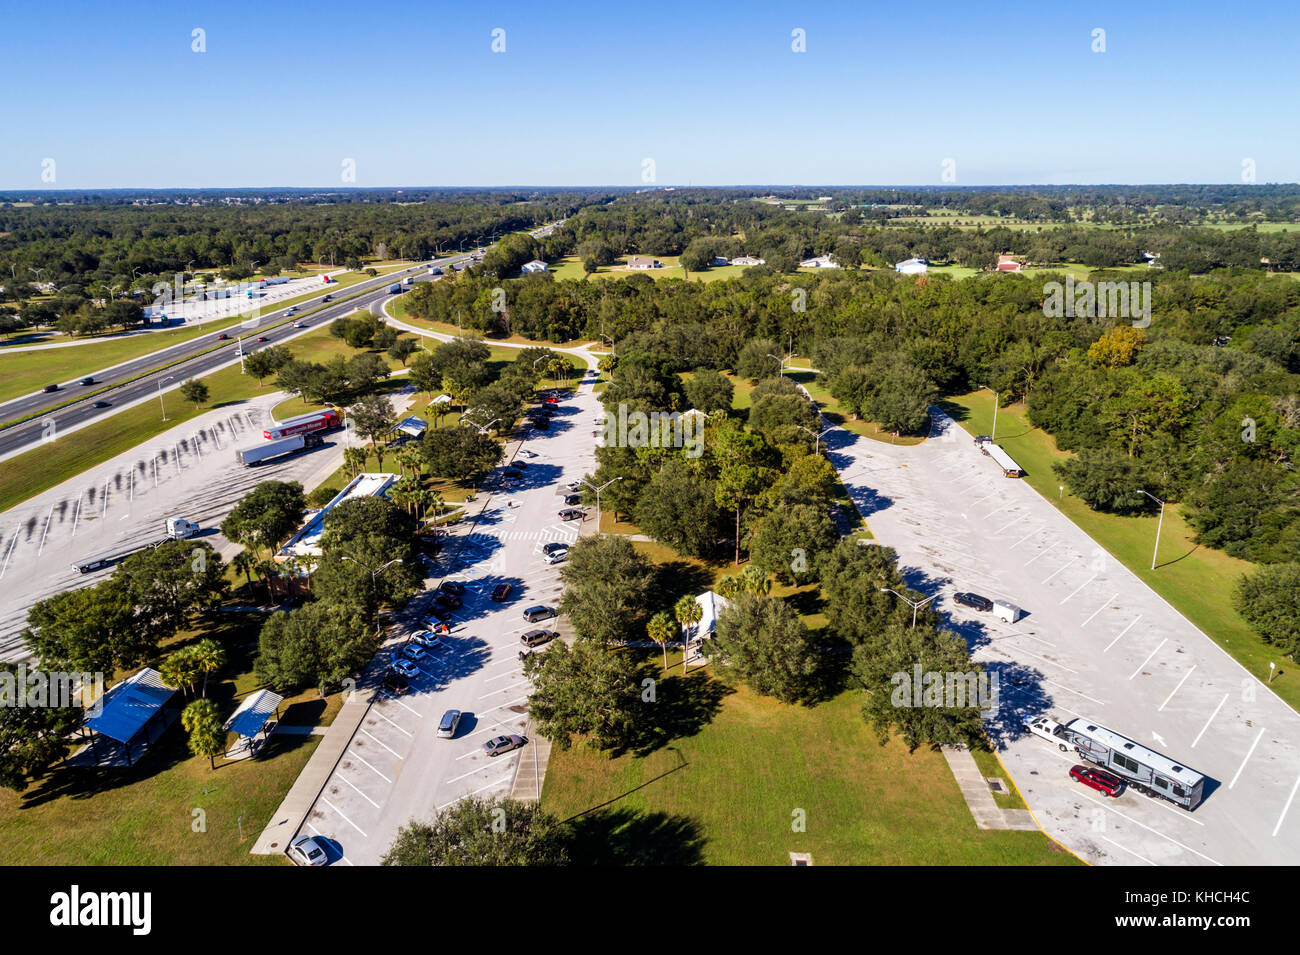 Florida Ocala Interstate I75 I-75 highway rest stop aerial overhead bird's eye view above - Stock Image